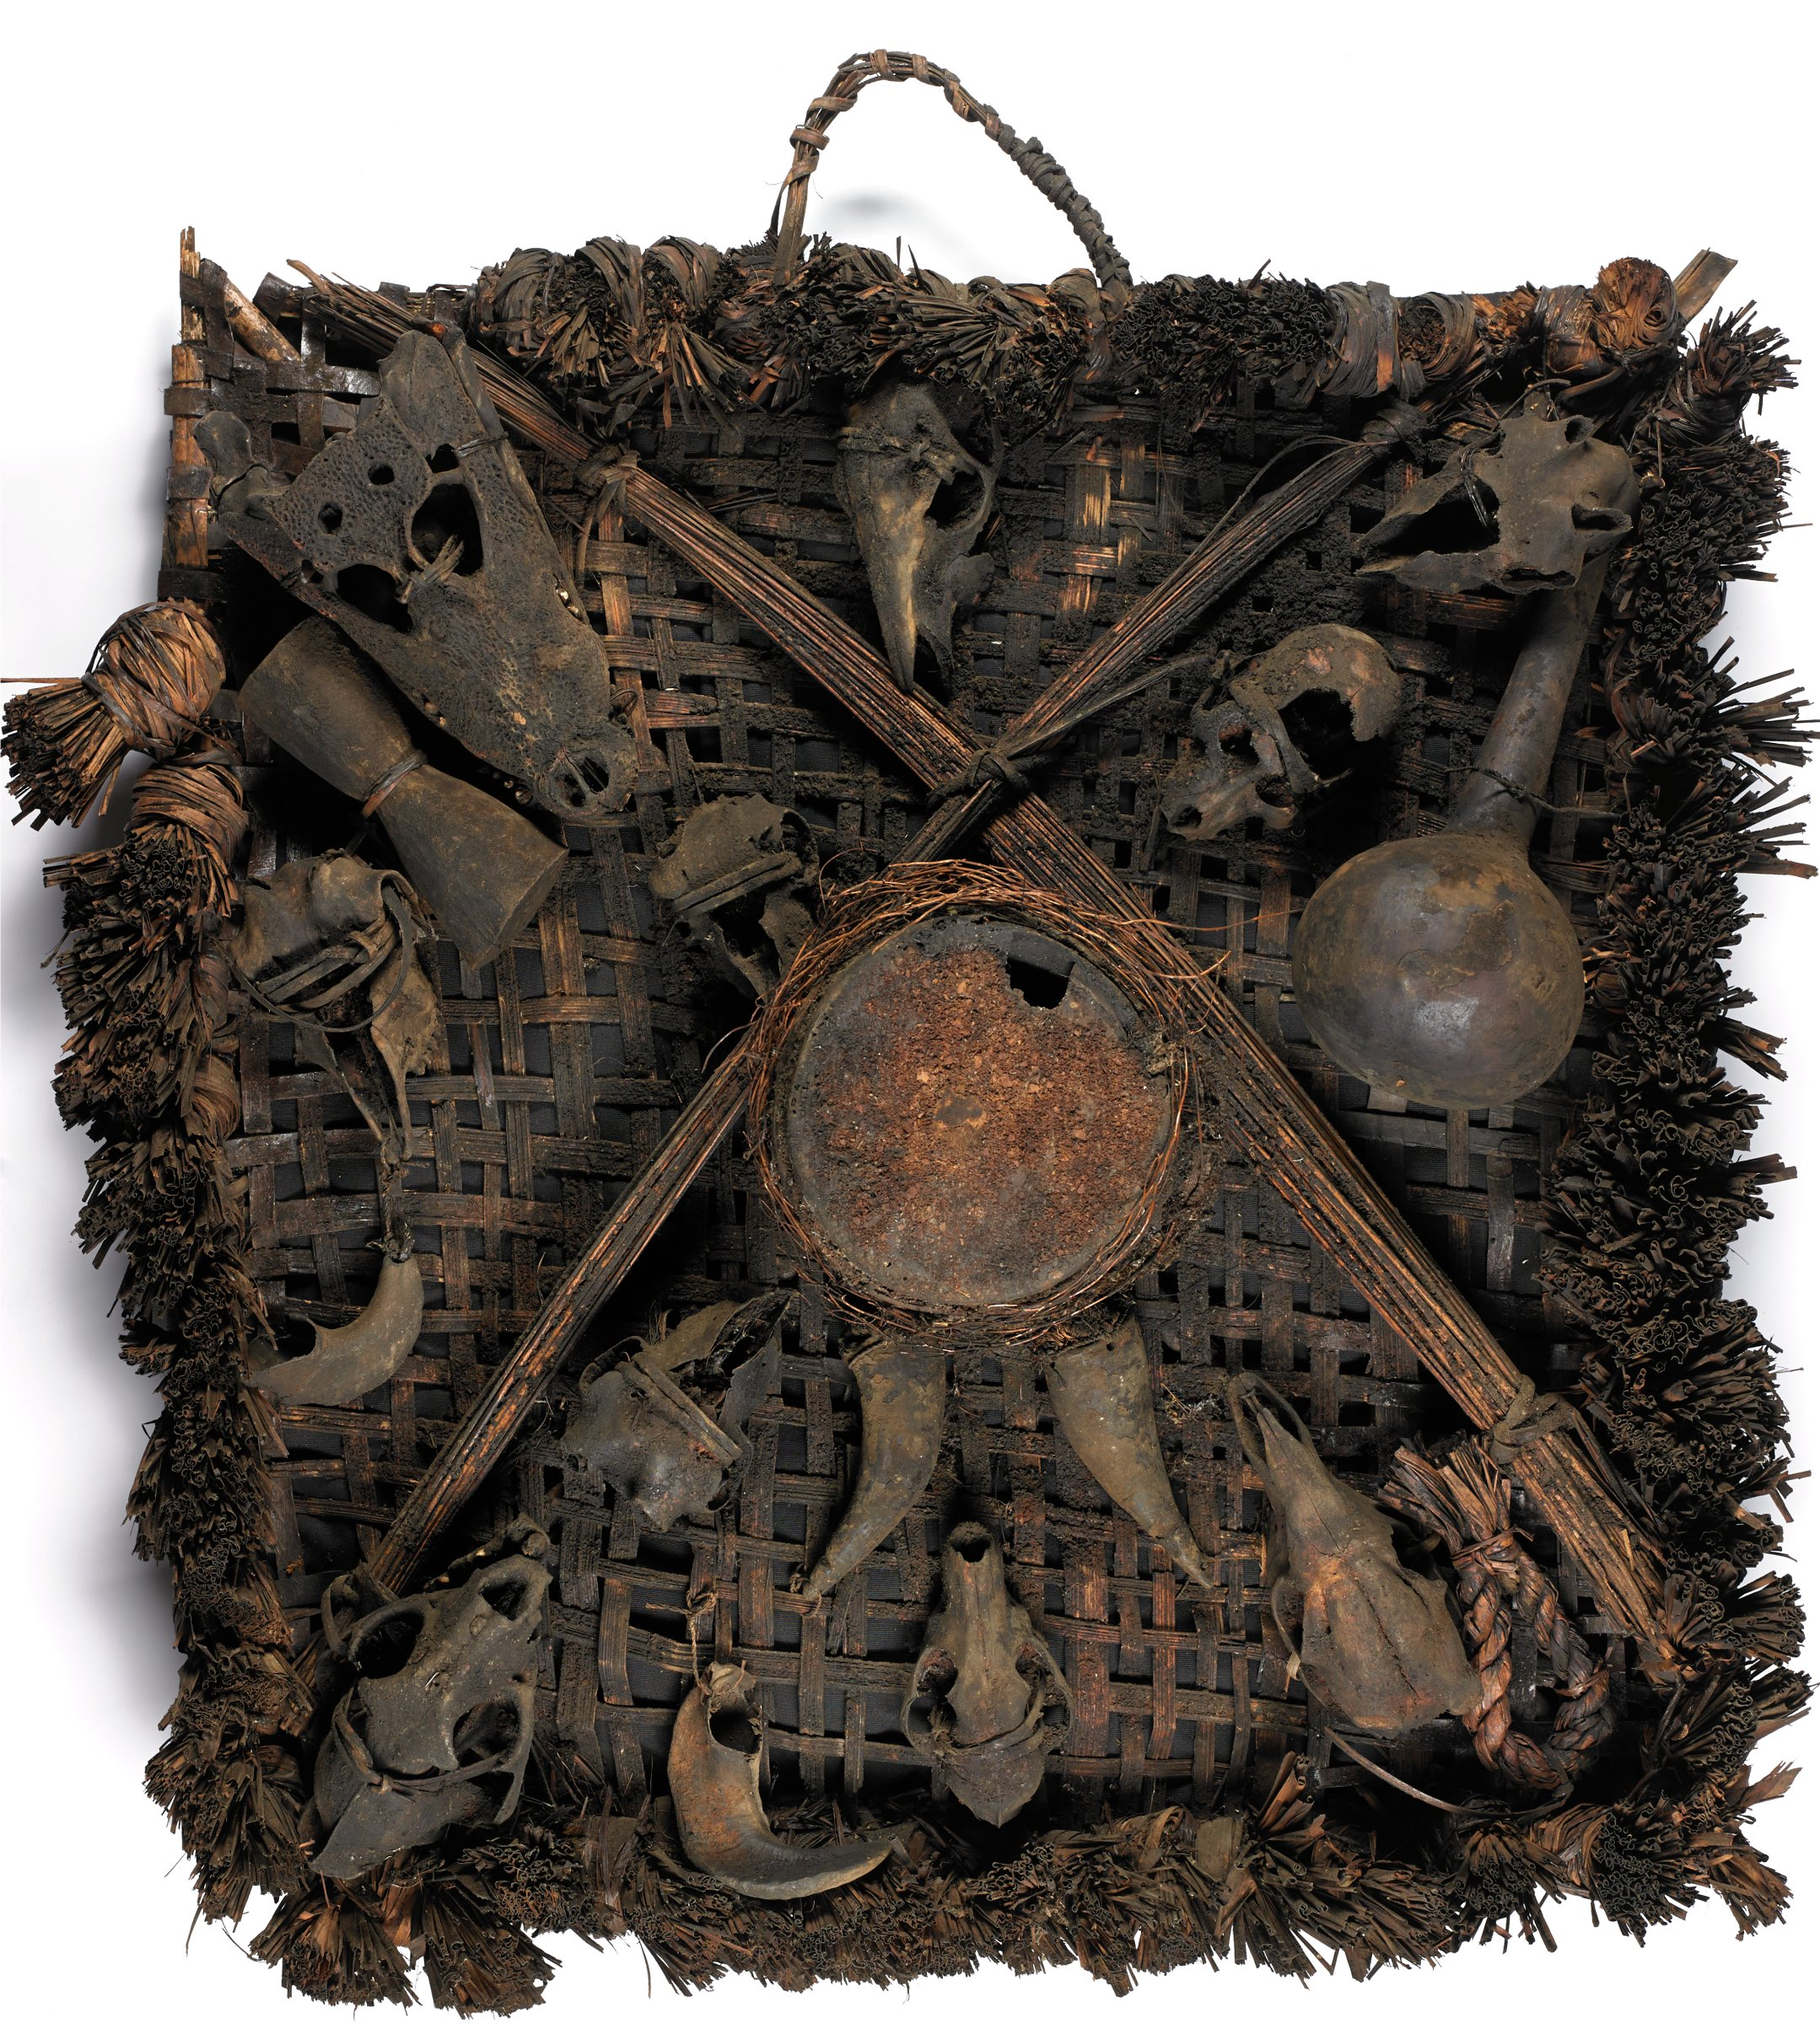 Society Emblem (drung mgbe), Ejagham people, Republic of Cameroon, and Nigeria, African, fiber, skulls, wood, horns, gourds, leather, and patina